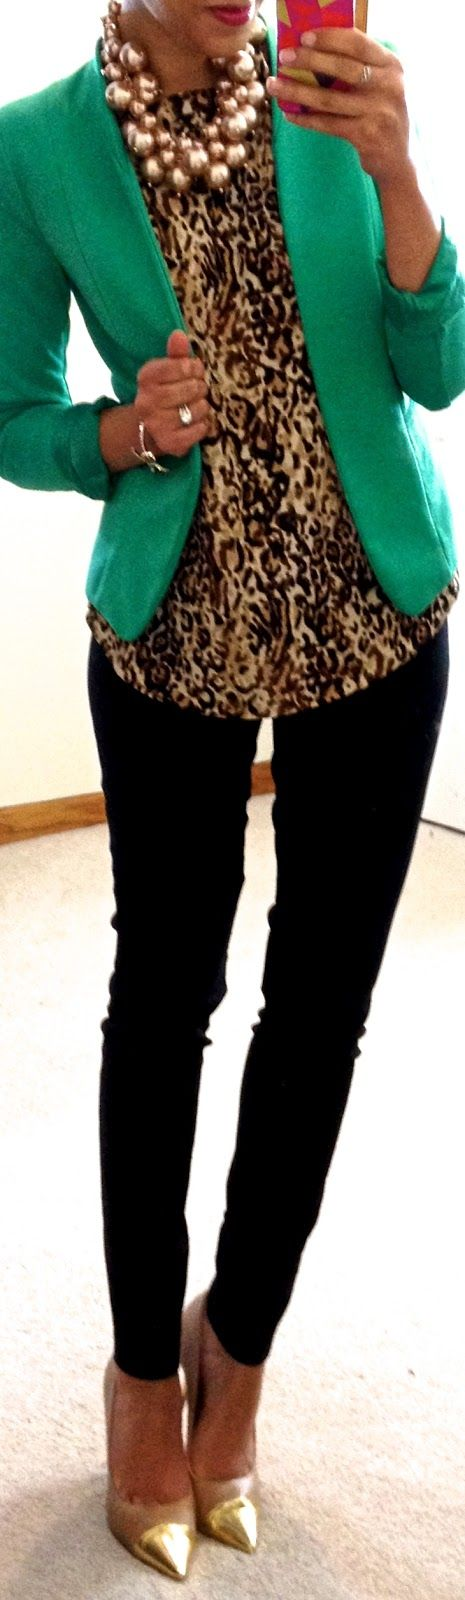 leopard print, green, and black.